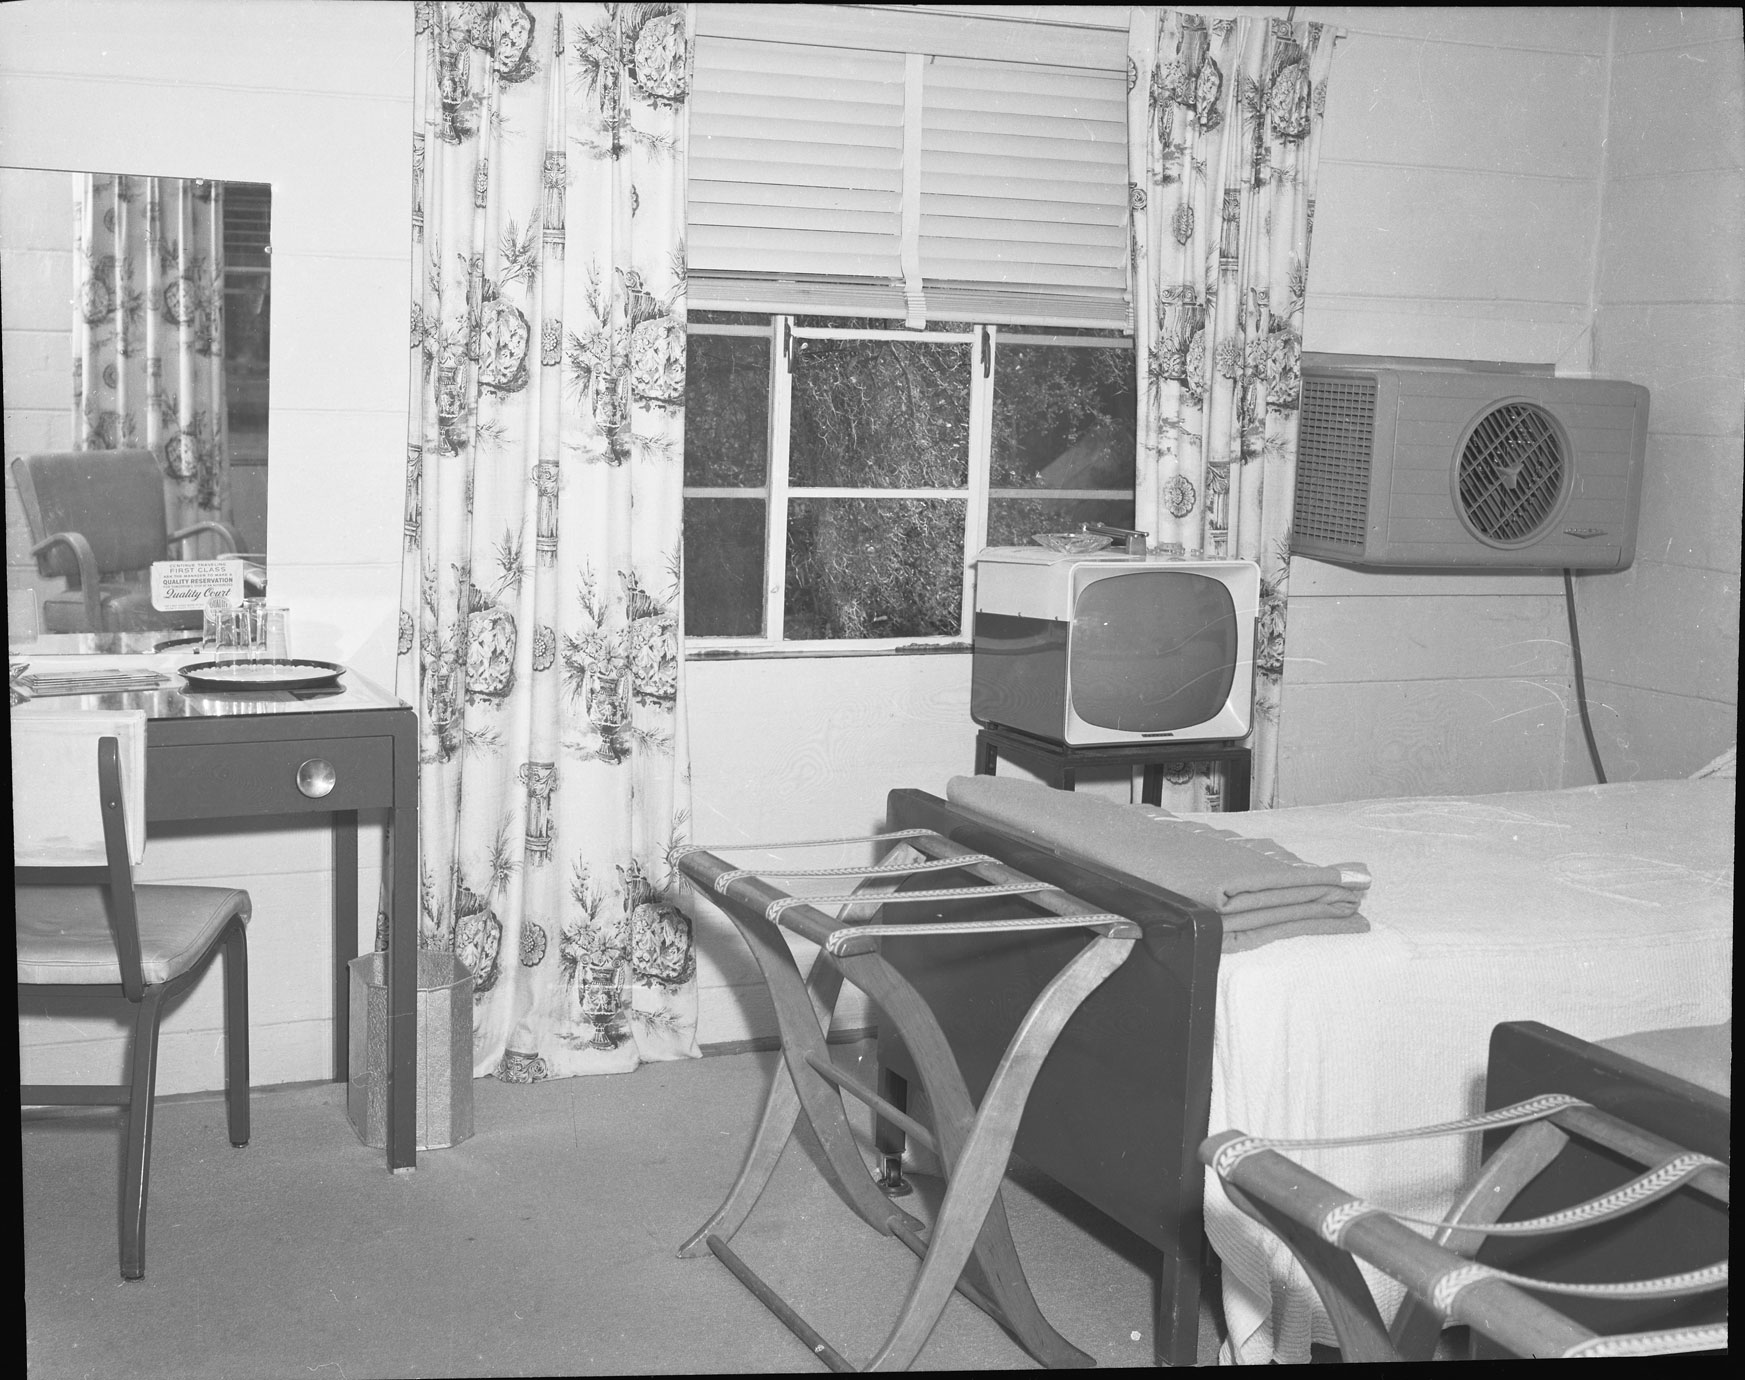 Room interior of the Gardens Corner Motel